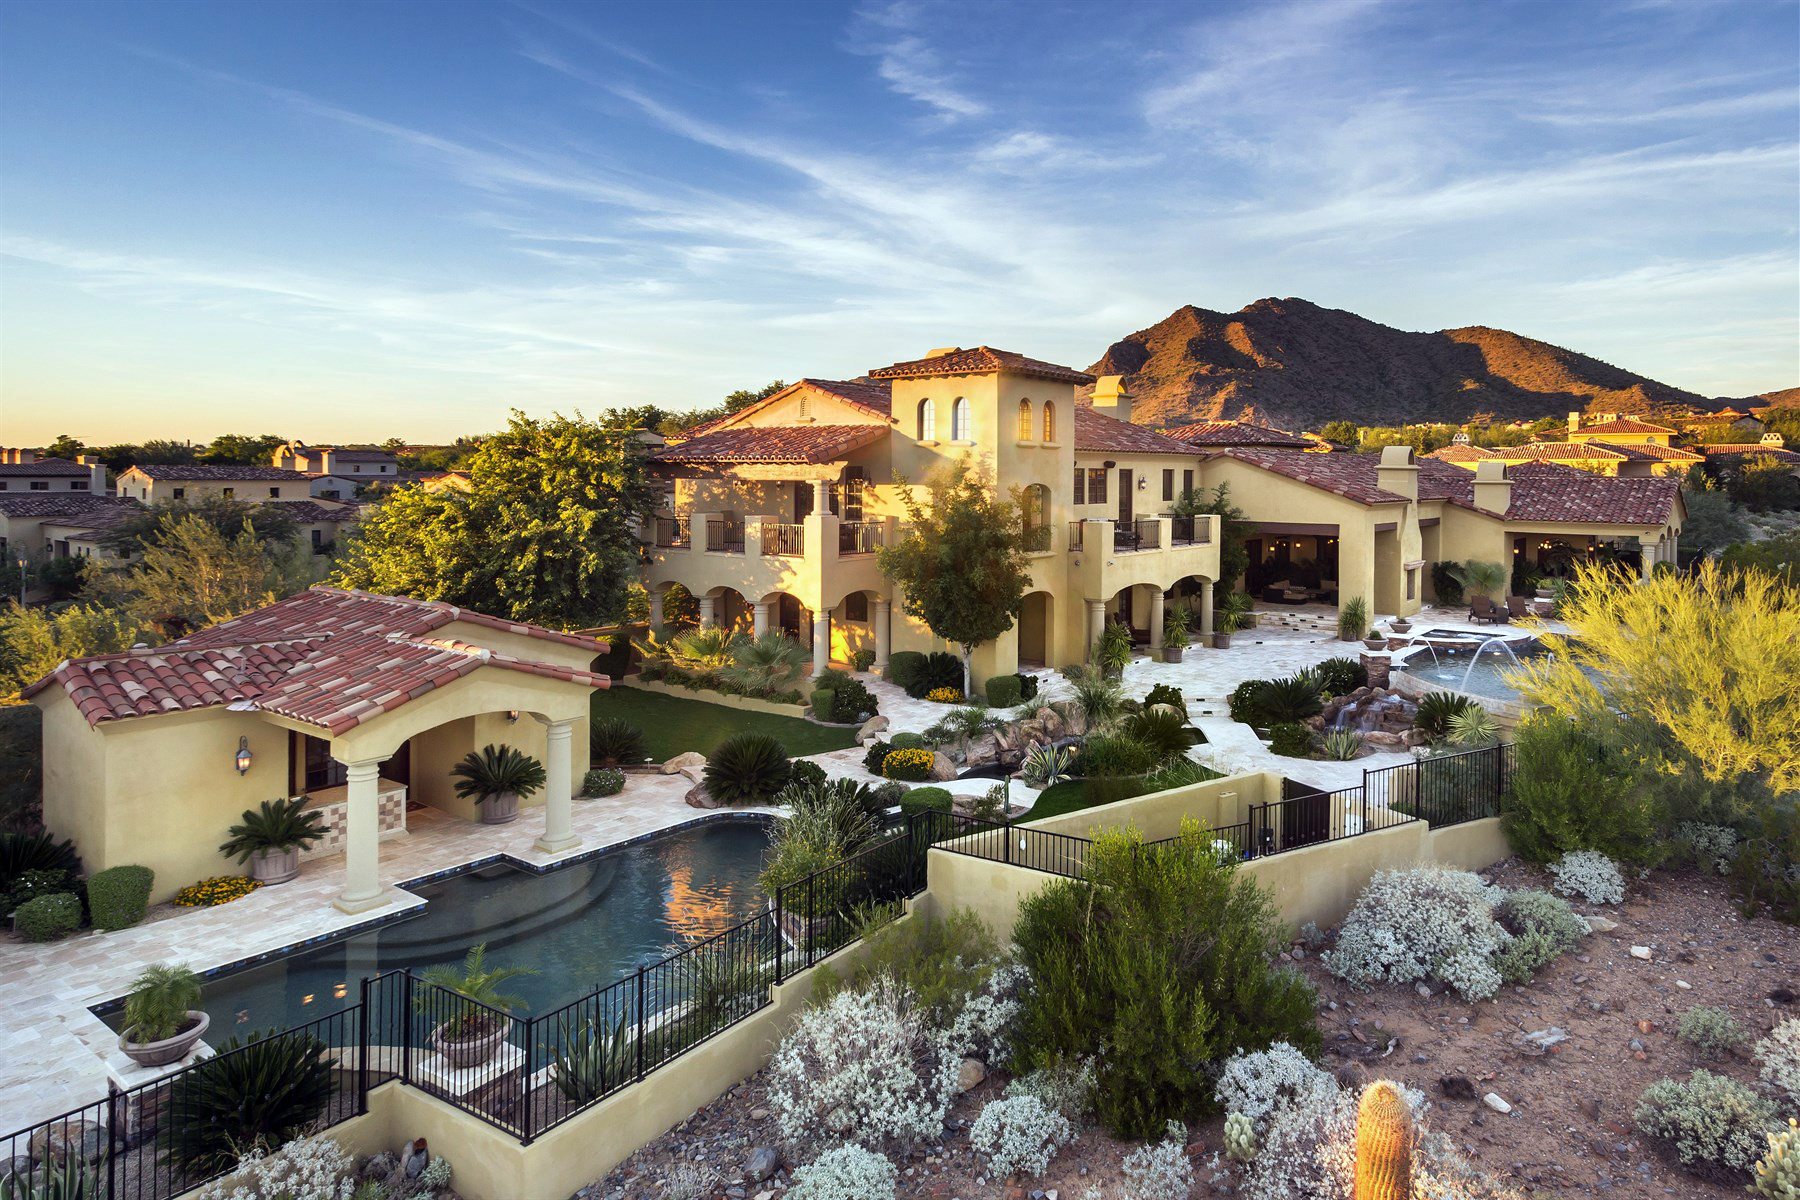 Villa per Vendita alle ore Deluxe Custom Residence In The Esteemed Exclusive Community Of Silverleaf 10211 E Chino Drive #1149 Scottsdale, Arizona 85255 Stati Uniti